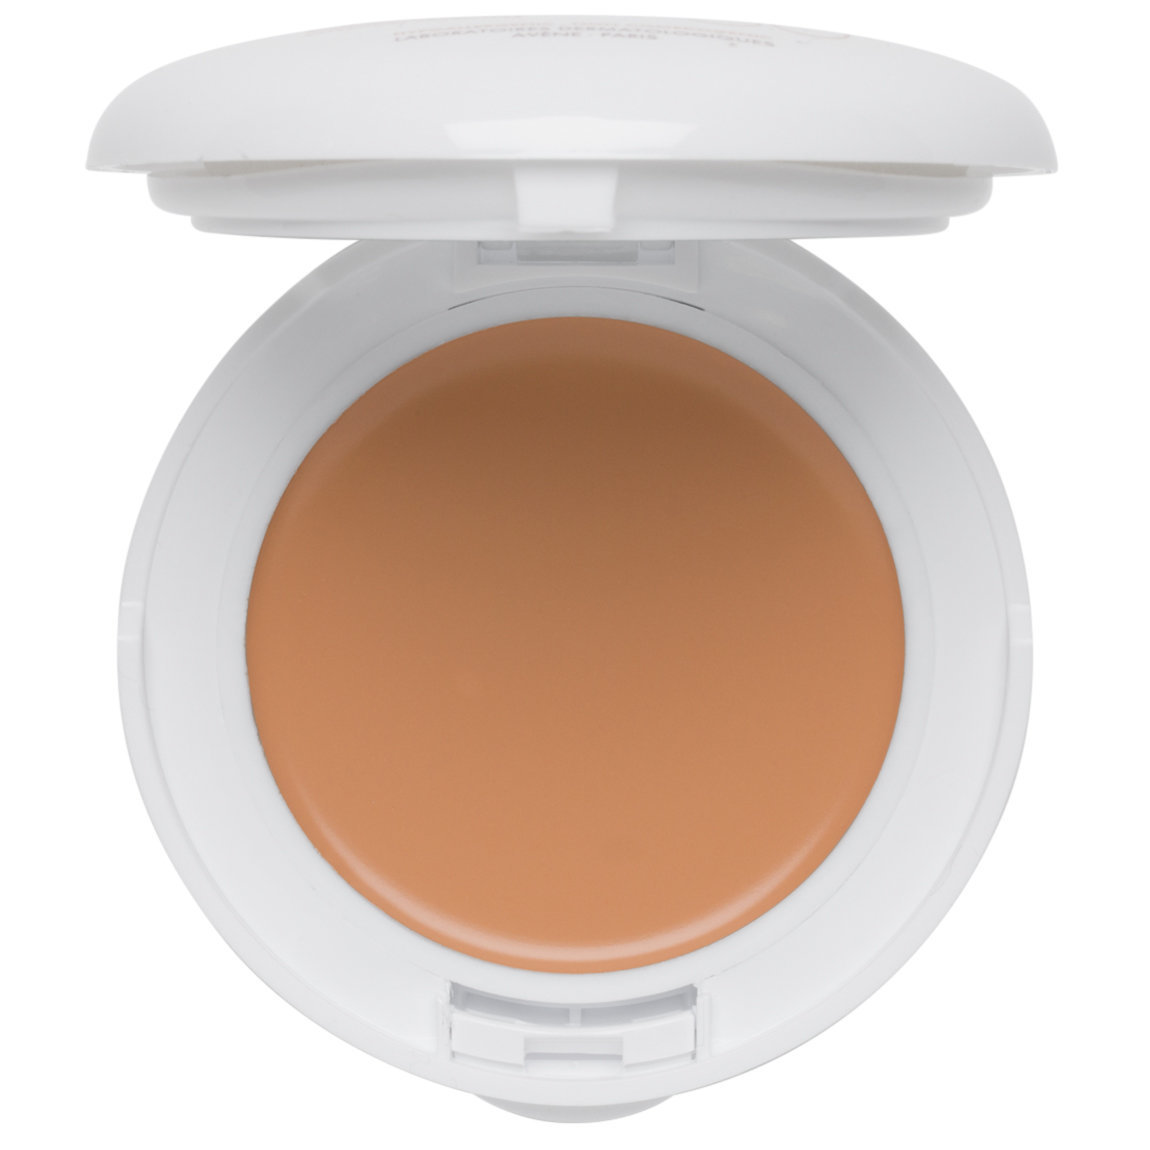 Eau Thermale Avène Mineral High Protection Tinted Compact SPF 50 Beige product swatch.